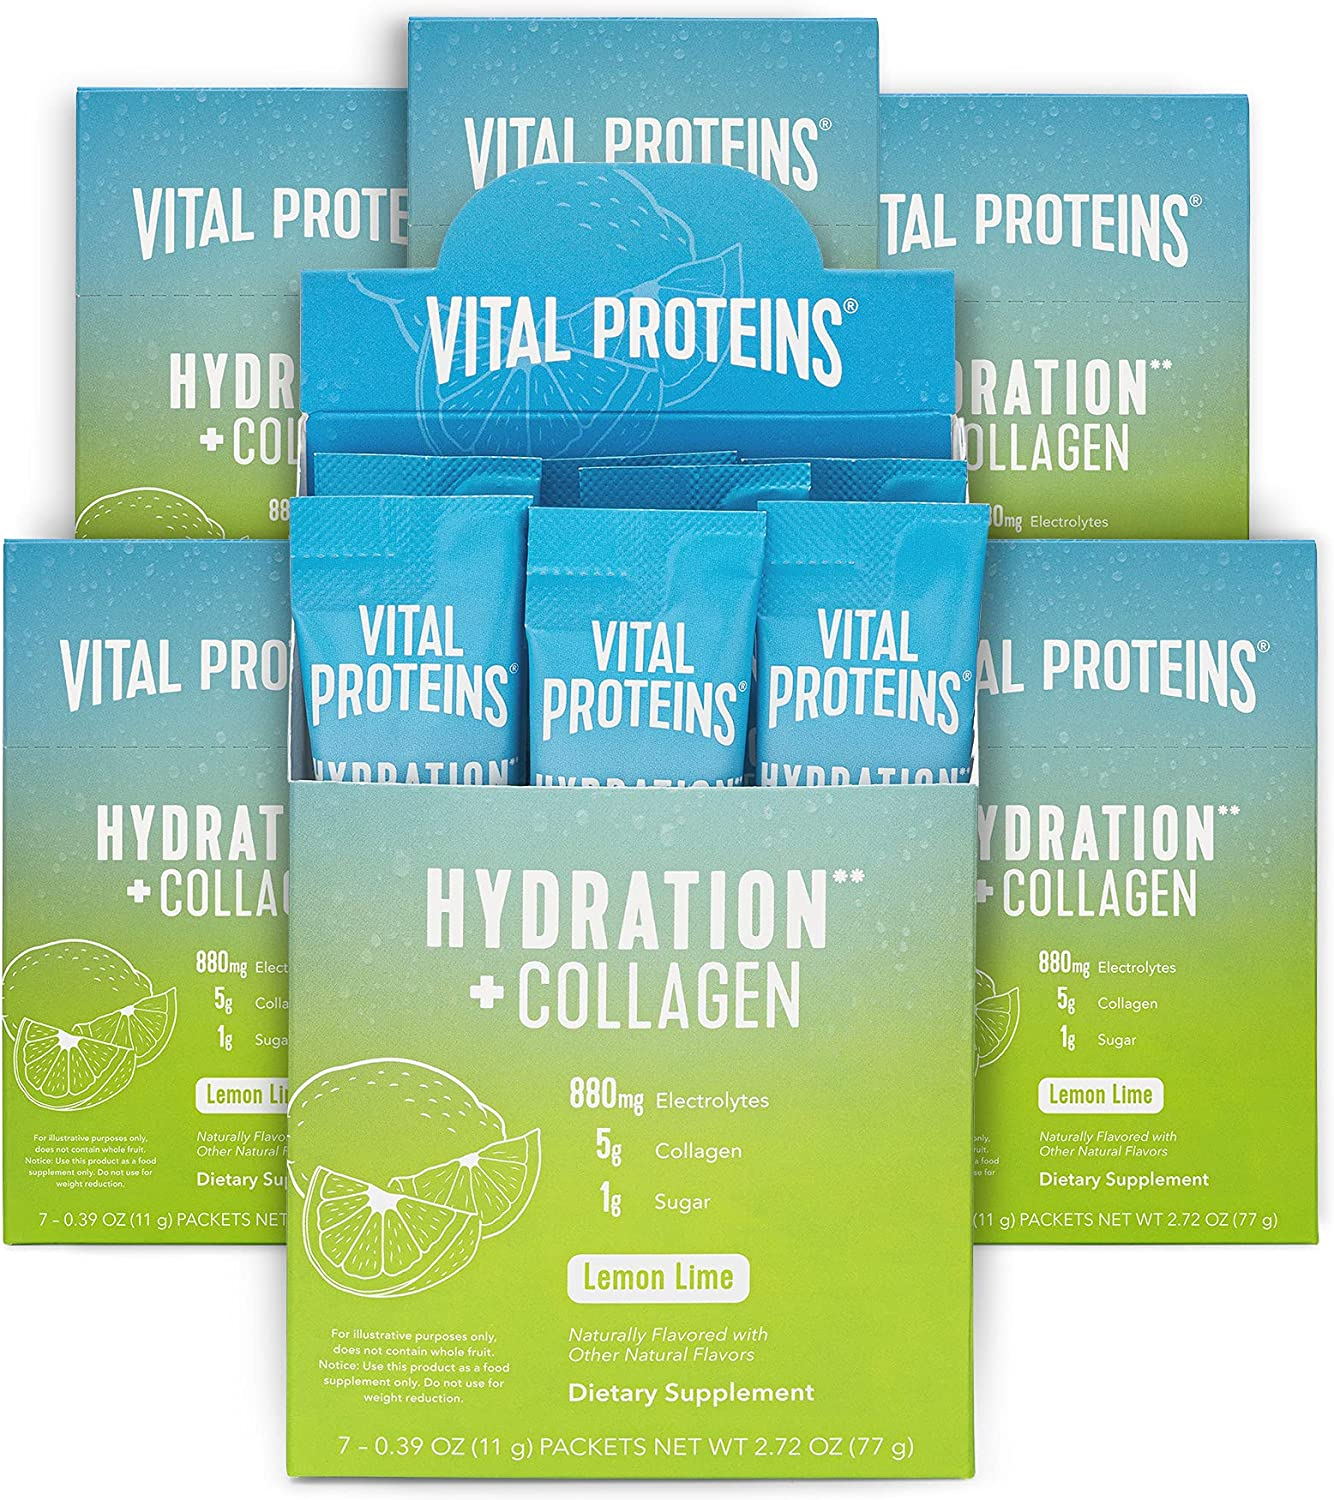 Vital Proteins Hydration + Collagen ラッピング無料 予約販売品 Packets Sodium E Low Powder